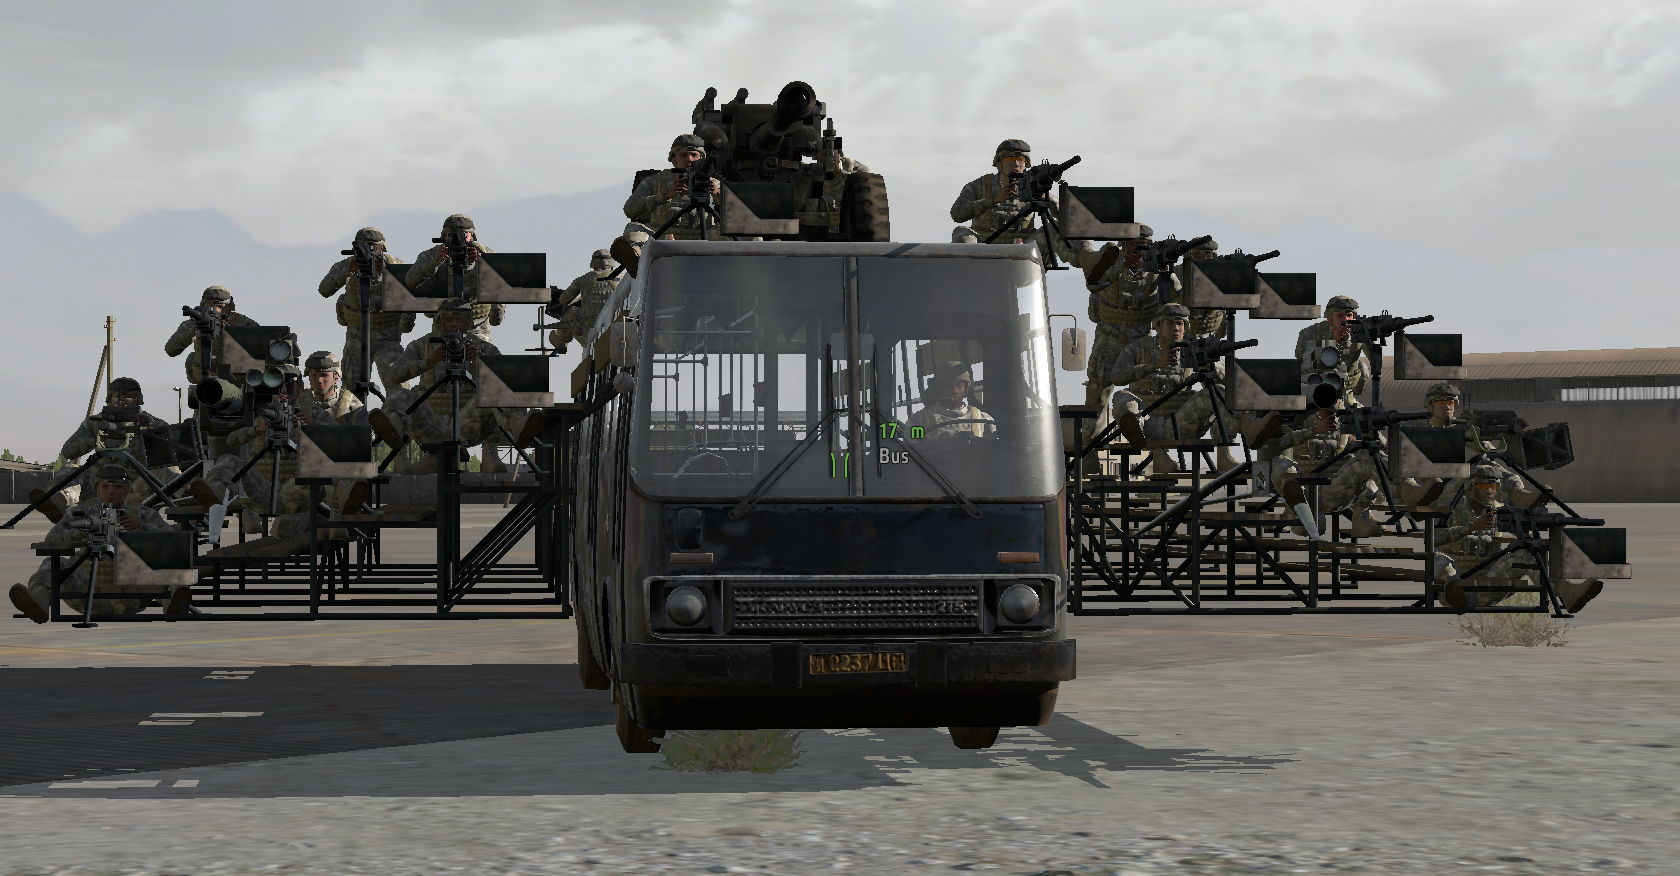 PC Gamer's terrifying Battle Bus is why you should play ArmA 2 | PC